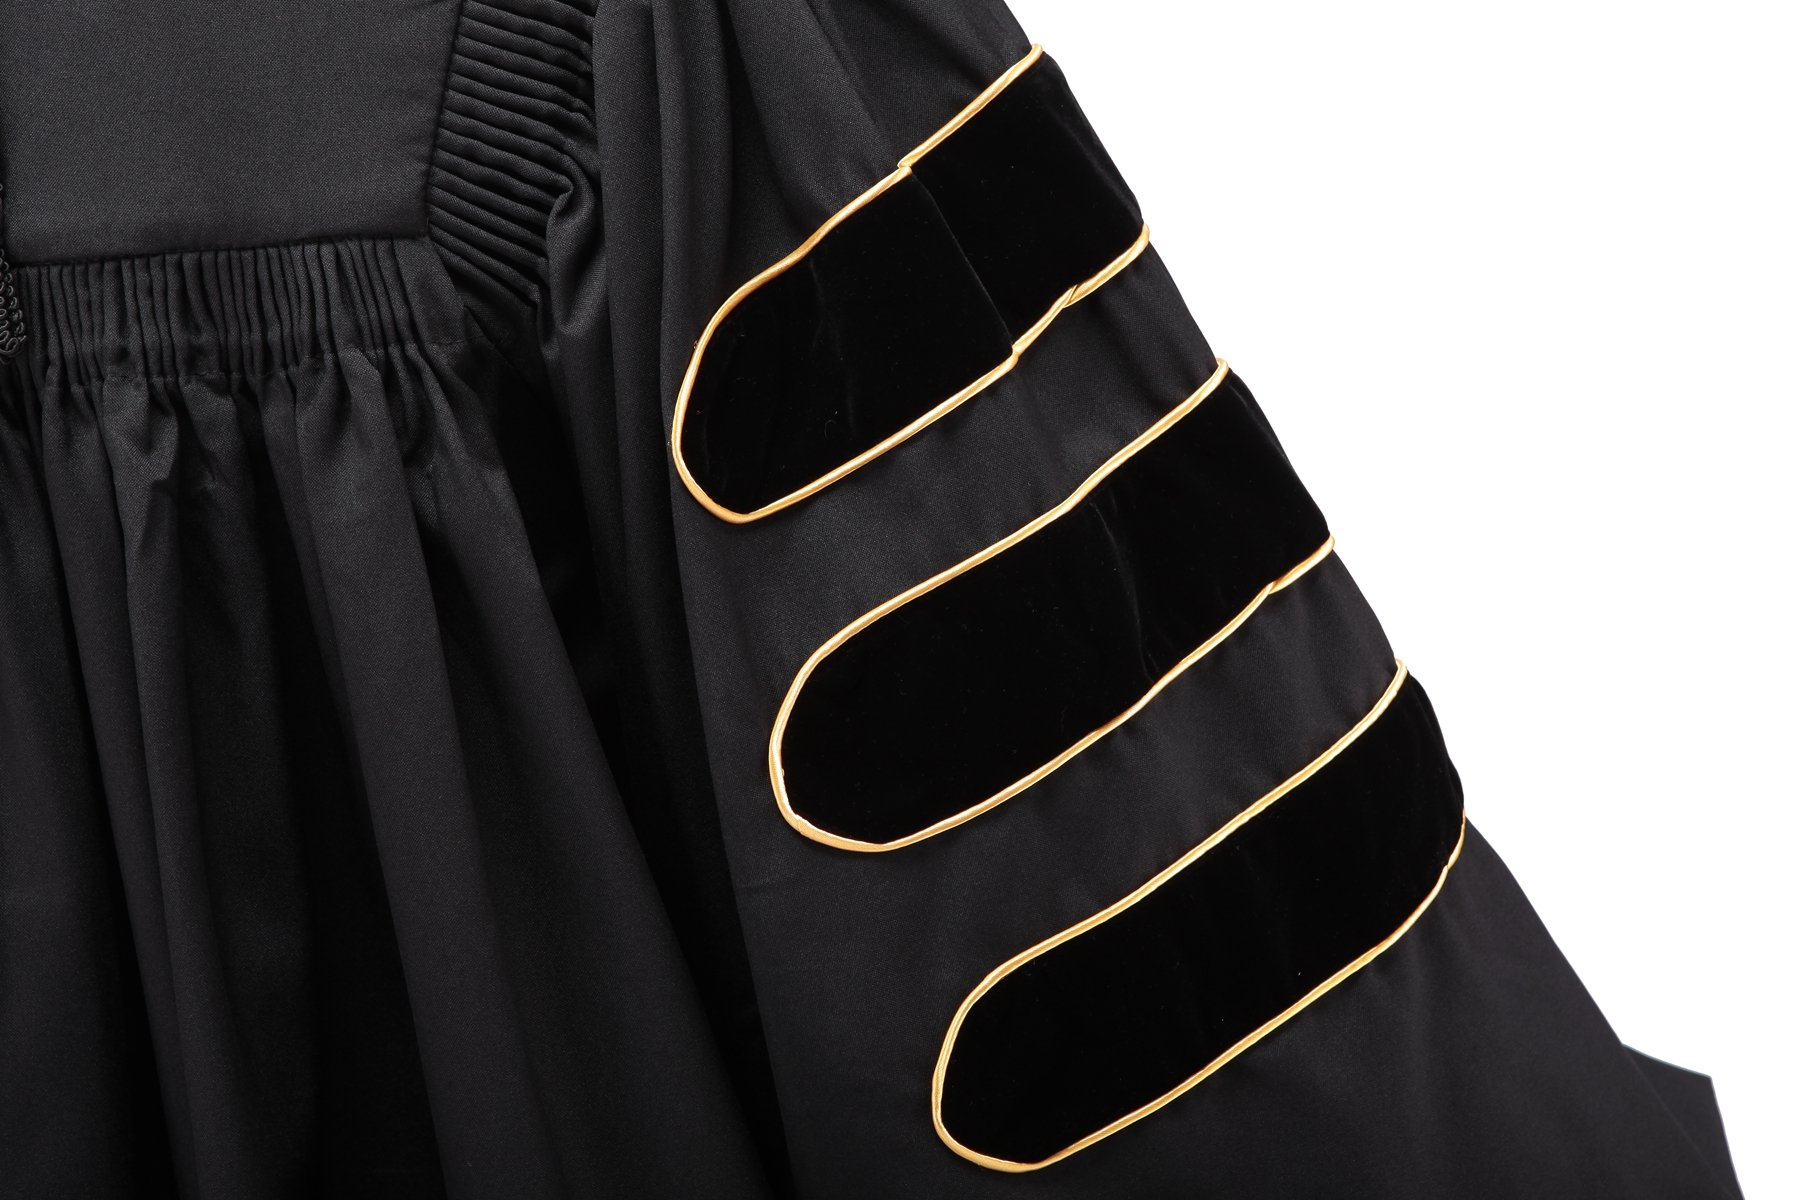 Robe Depot Unisex Deluxe Doctoral Graduation Gown With Gold Piping, Black Fabric and Black Velvet,48 by Robe Depot